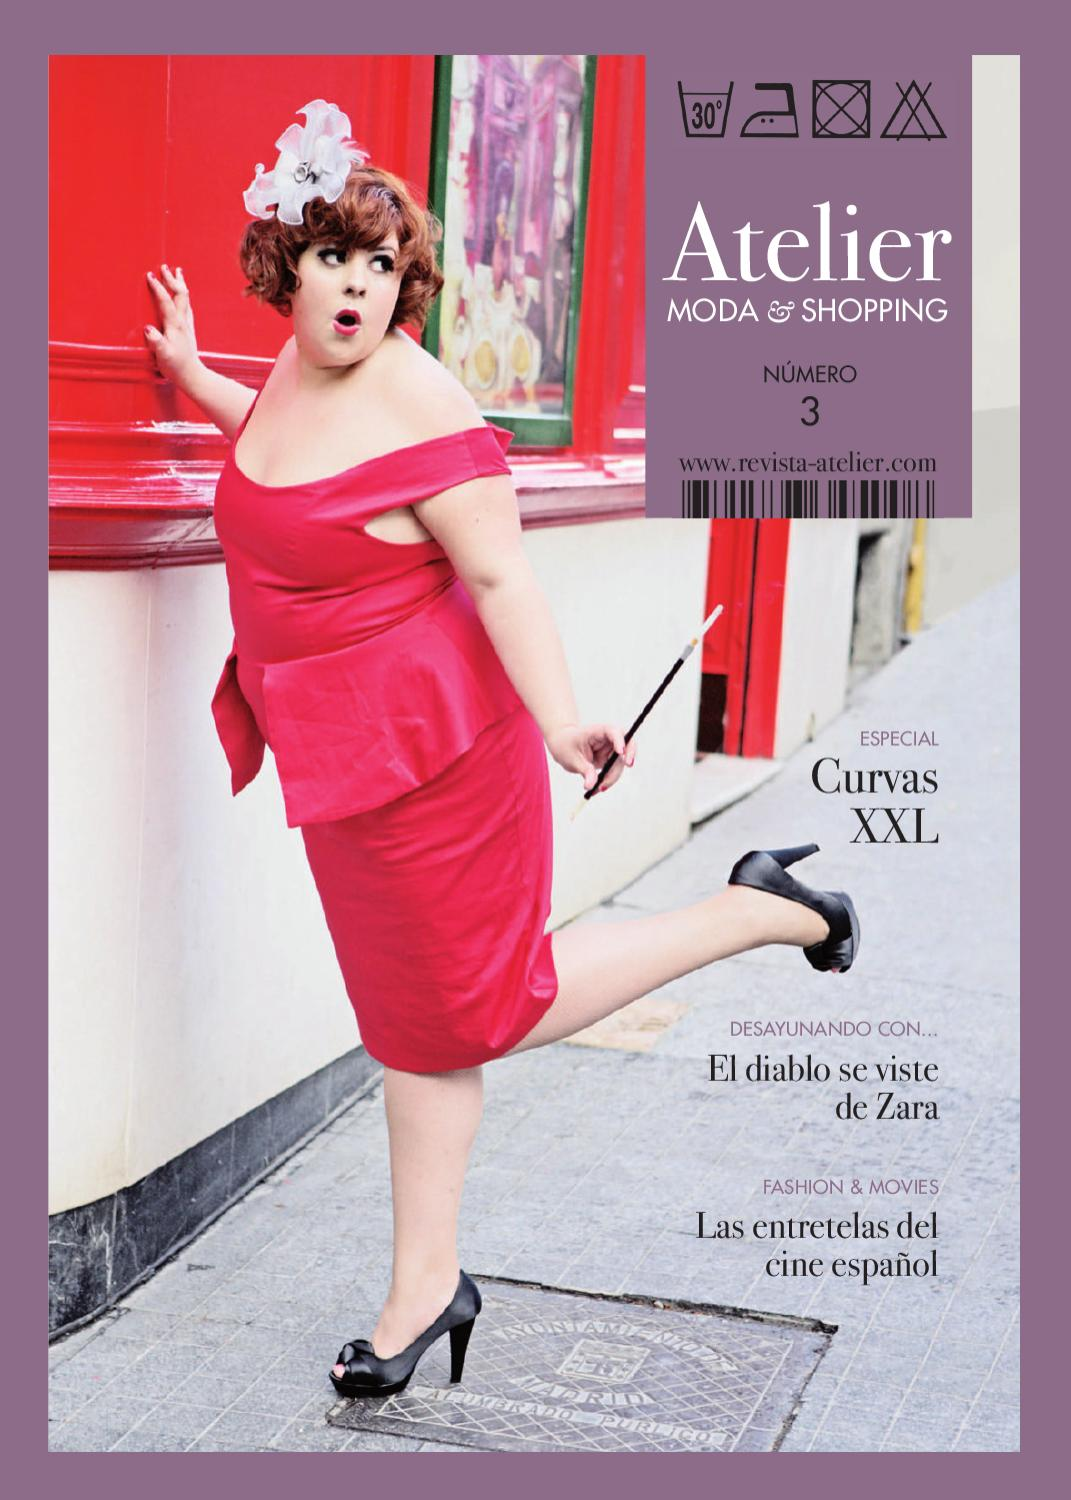 b7e95949ae Atelier Fashion   Shopping nº 3 by Atelier Fashion   Shopping - issuu